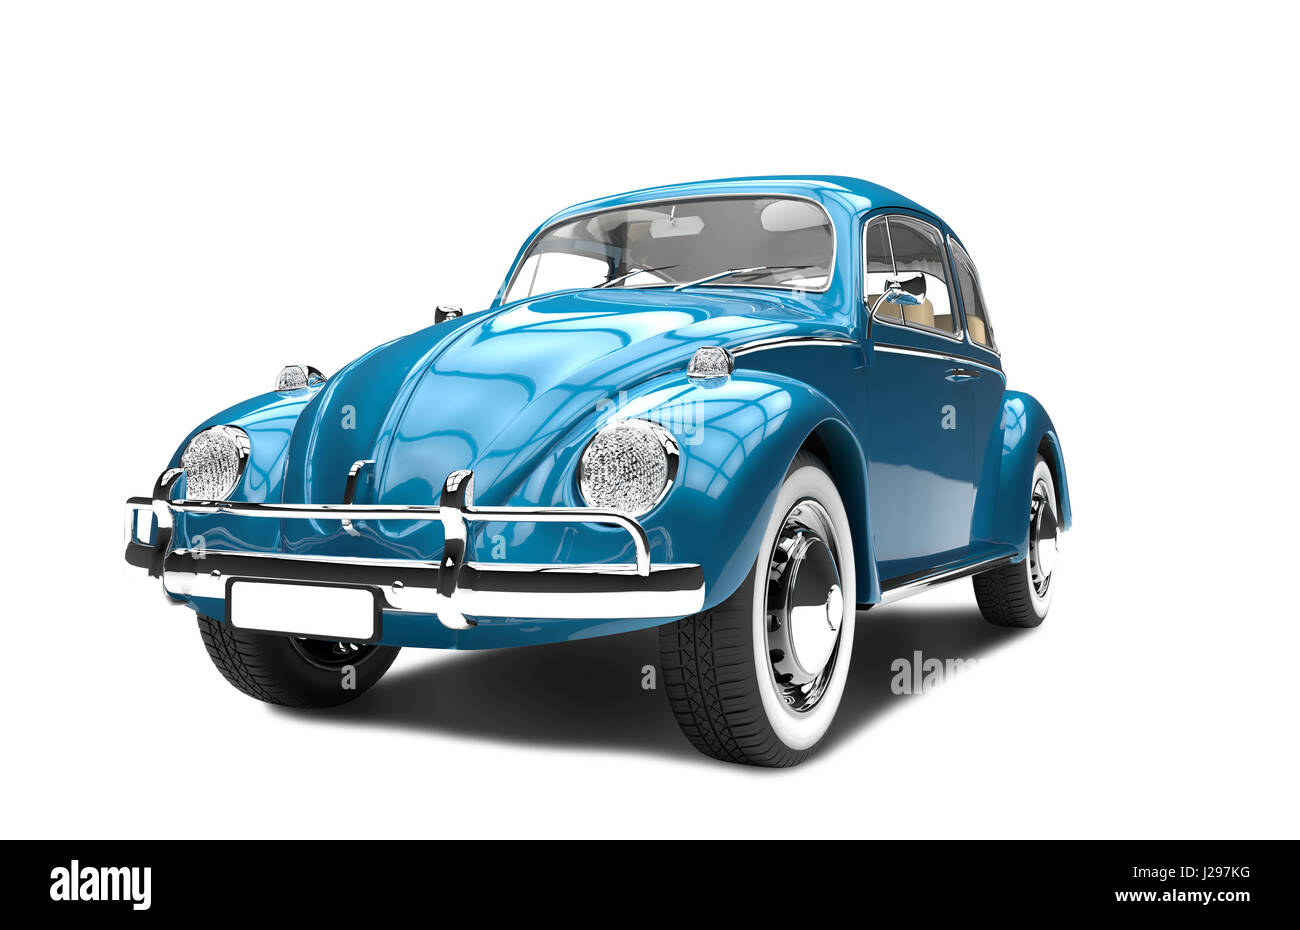 Old generic blue car isolated on a white background - Stock Image